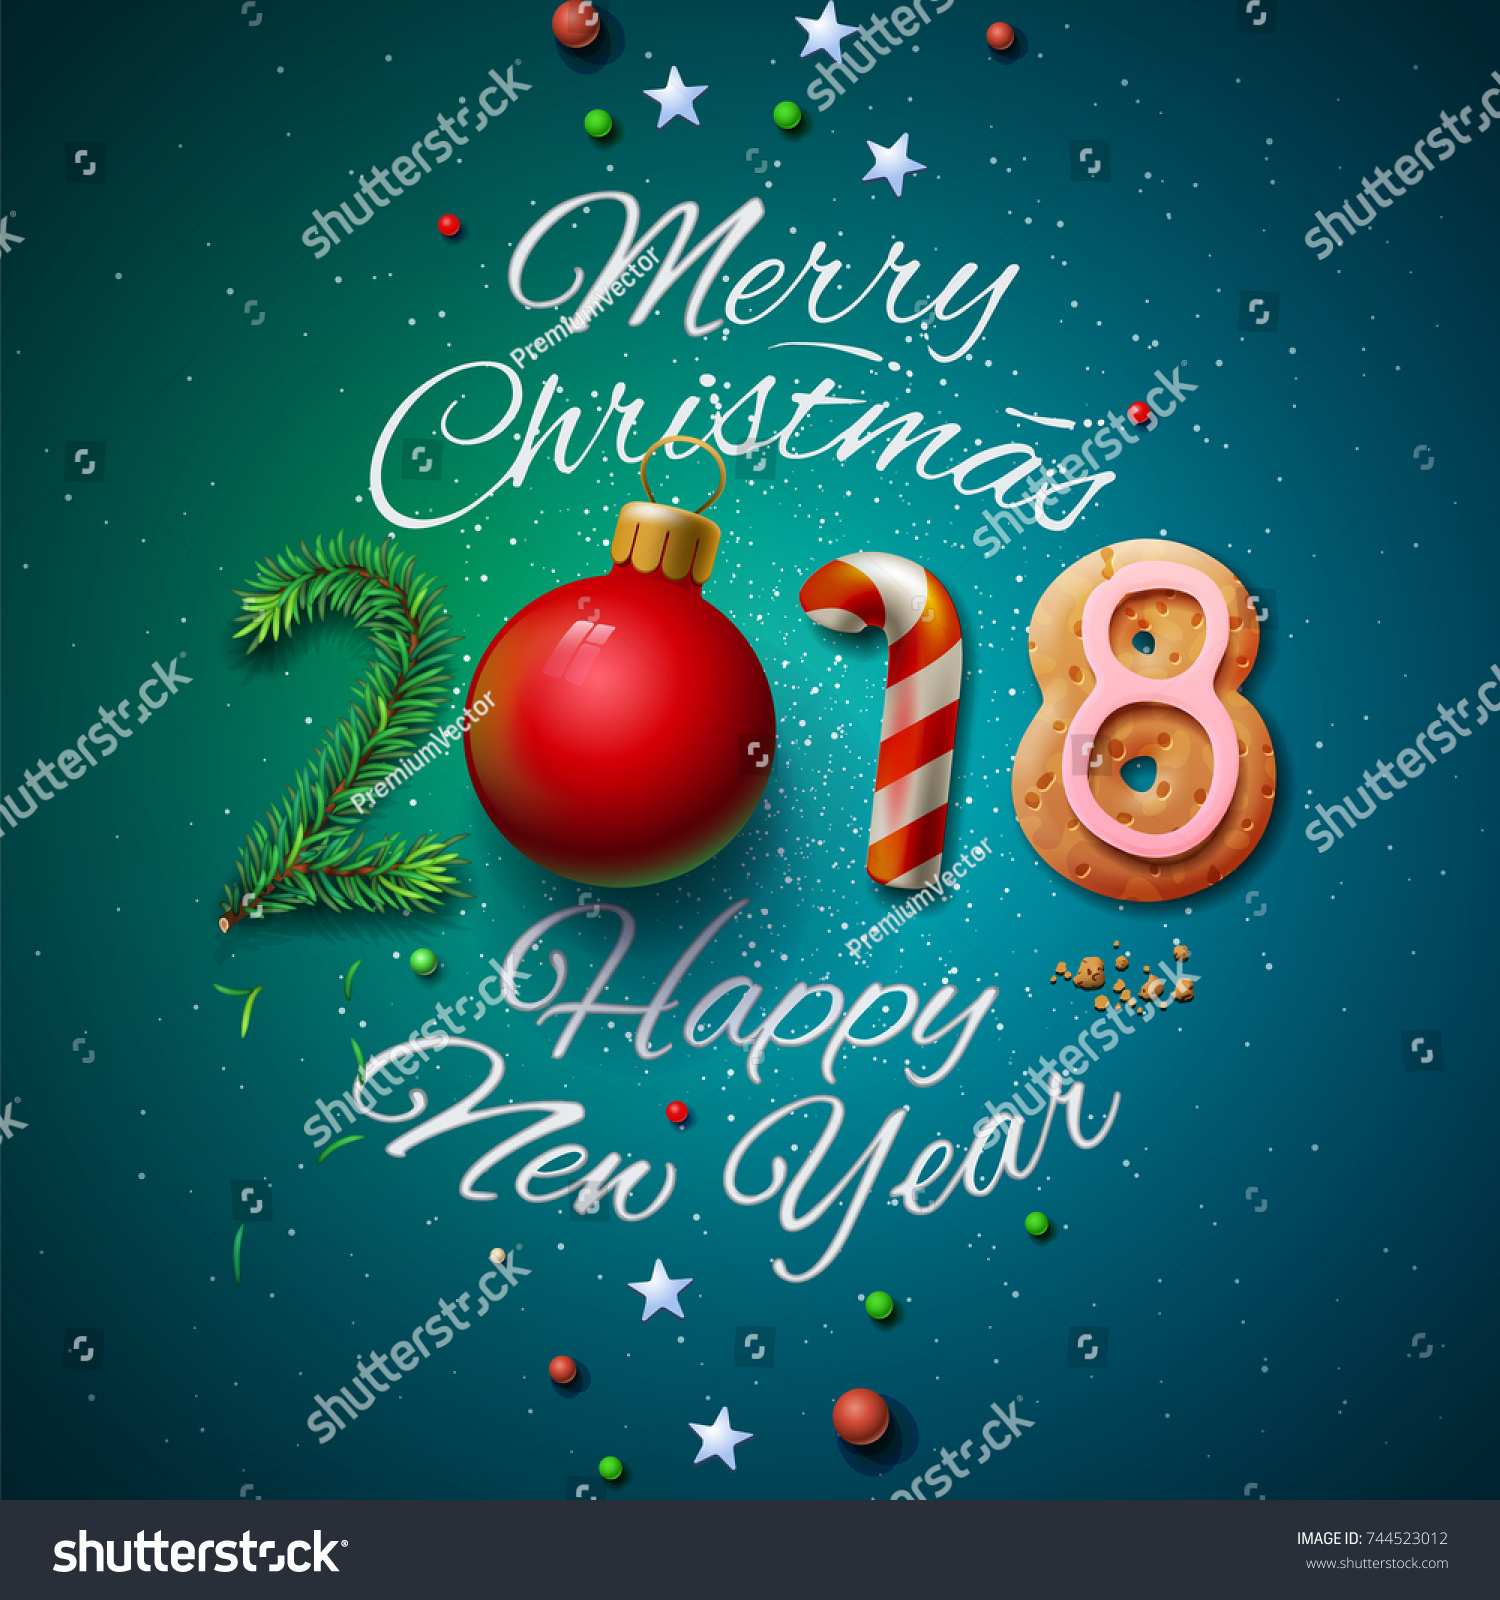 merry christmas and happy new year 2018 greeting card vector illustration